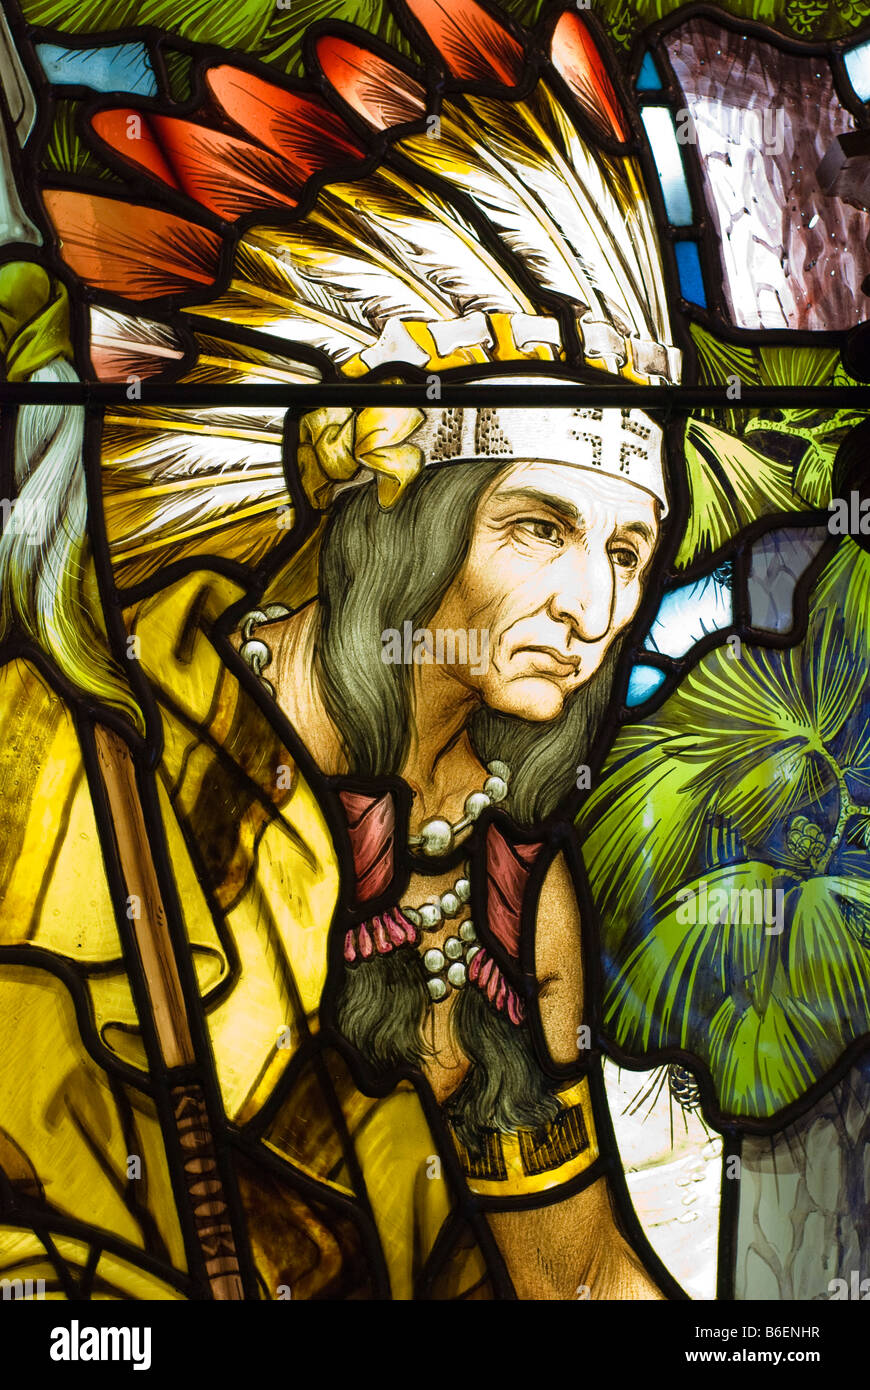 This Native American is watching as Robert Cavelier Sieur de la Salle lands at the shores of what would become Detroit, - Stock Image